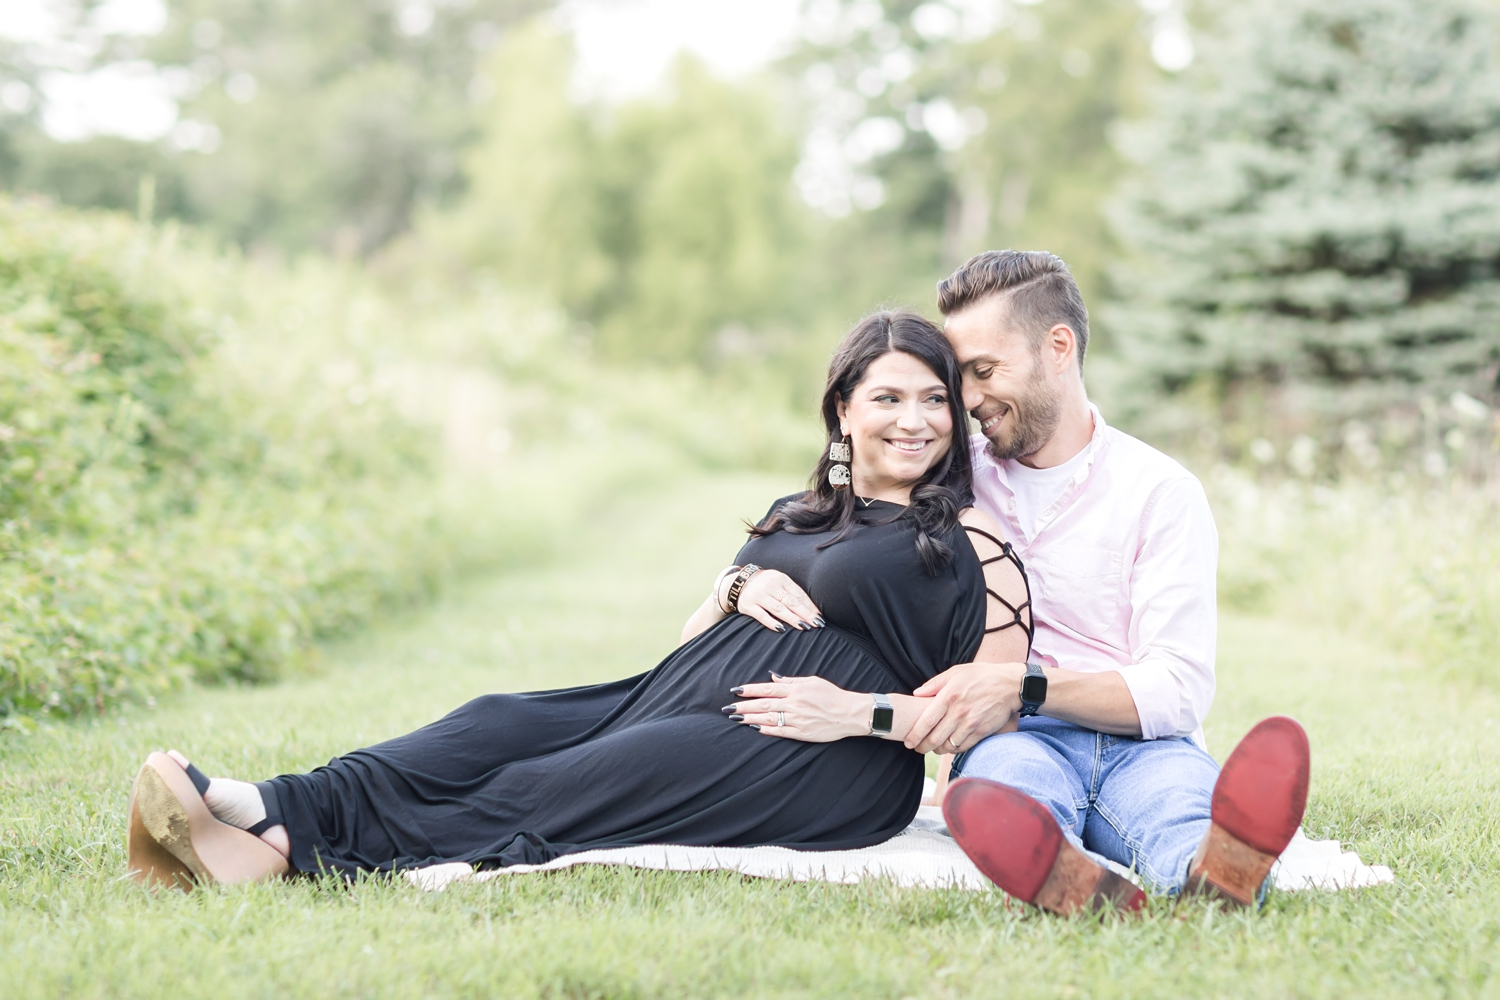 Saunders-Consroe Maternity-30_Cromwell-Valley-Park-Maryland-maternity-photographer-anna-grace-photography-photo.jpg